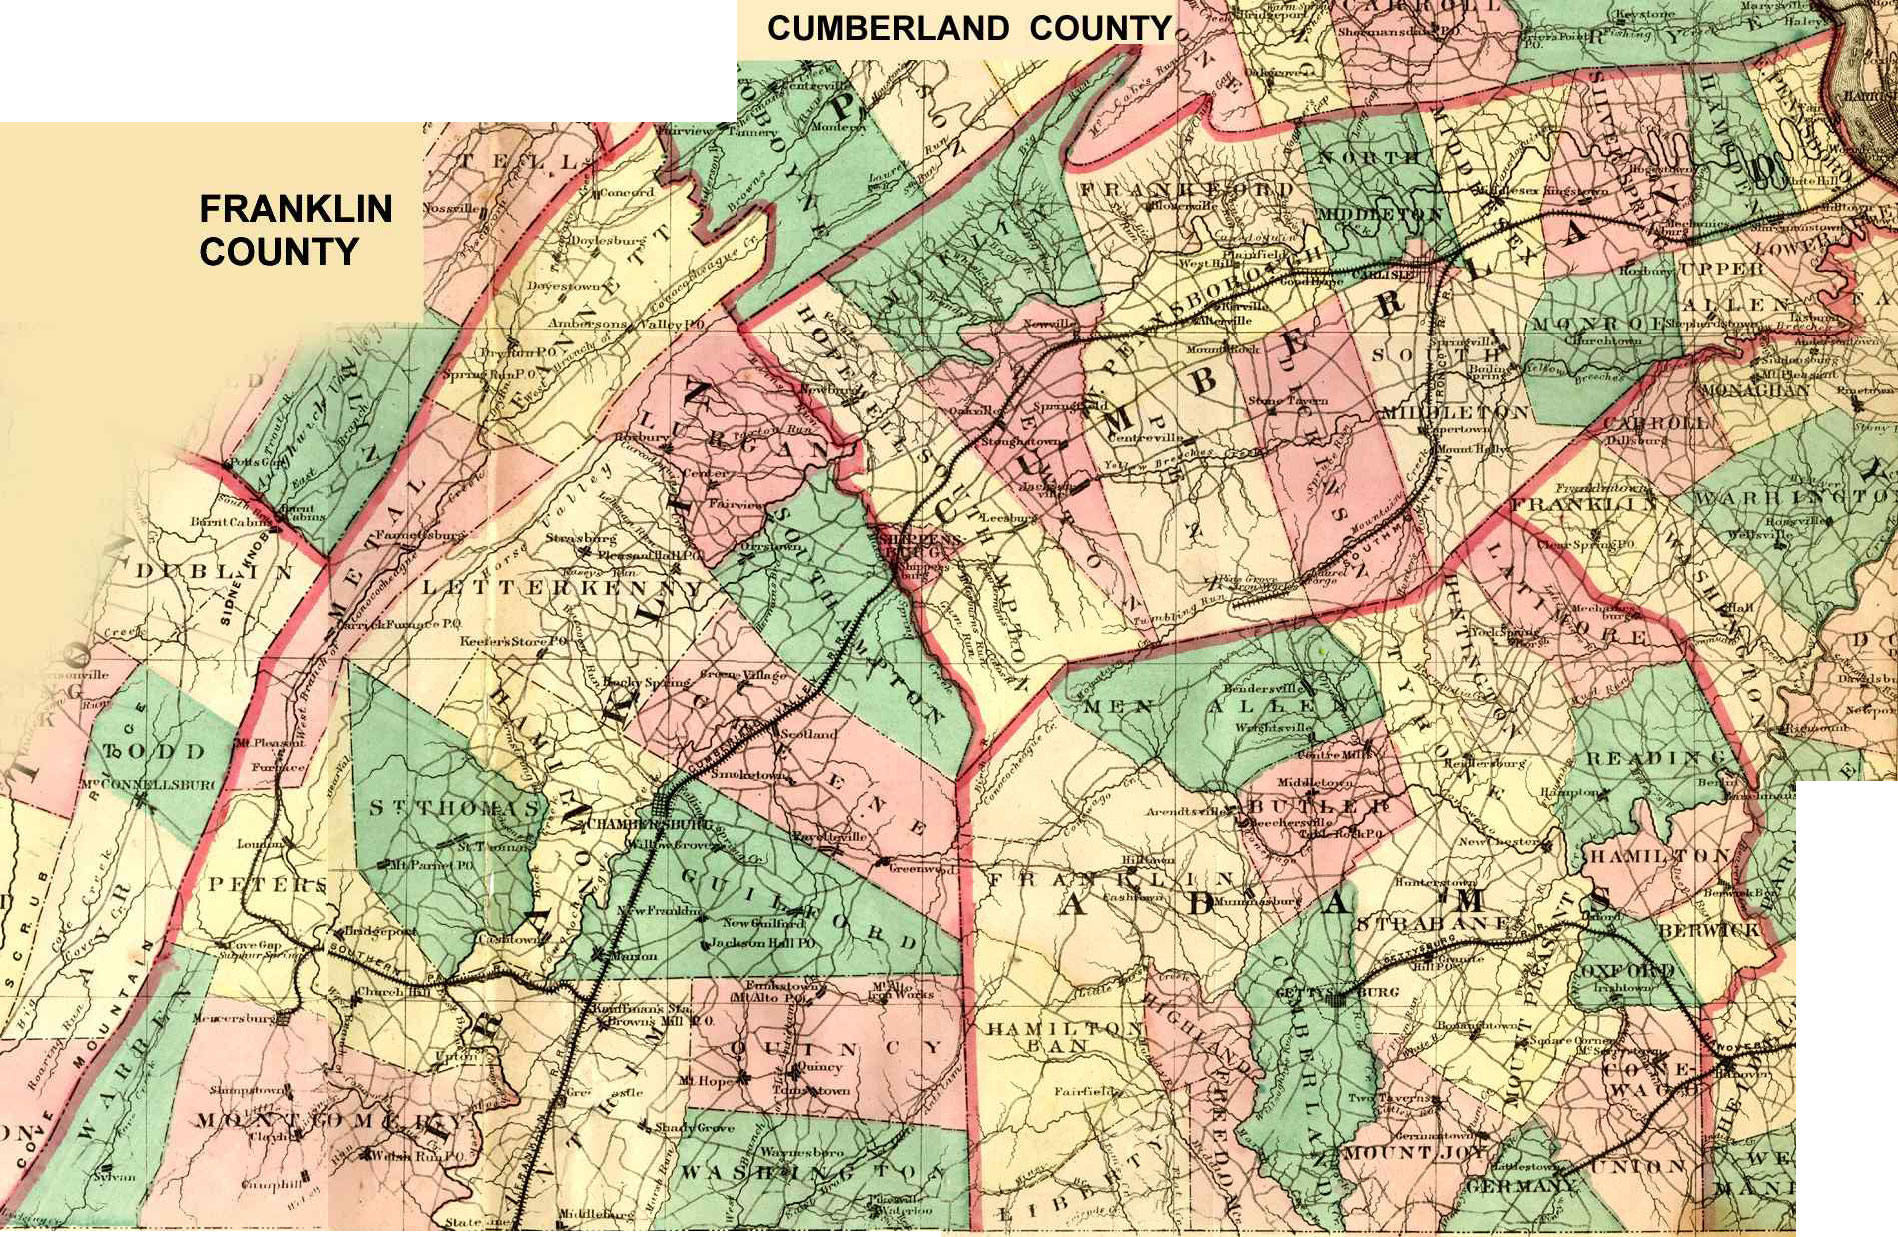 Adams in Cumberland County PA from 1749 to 1820 - Adams